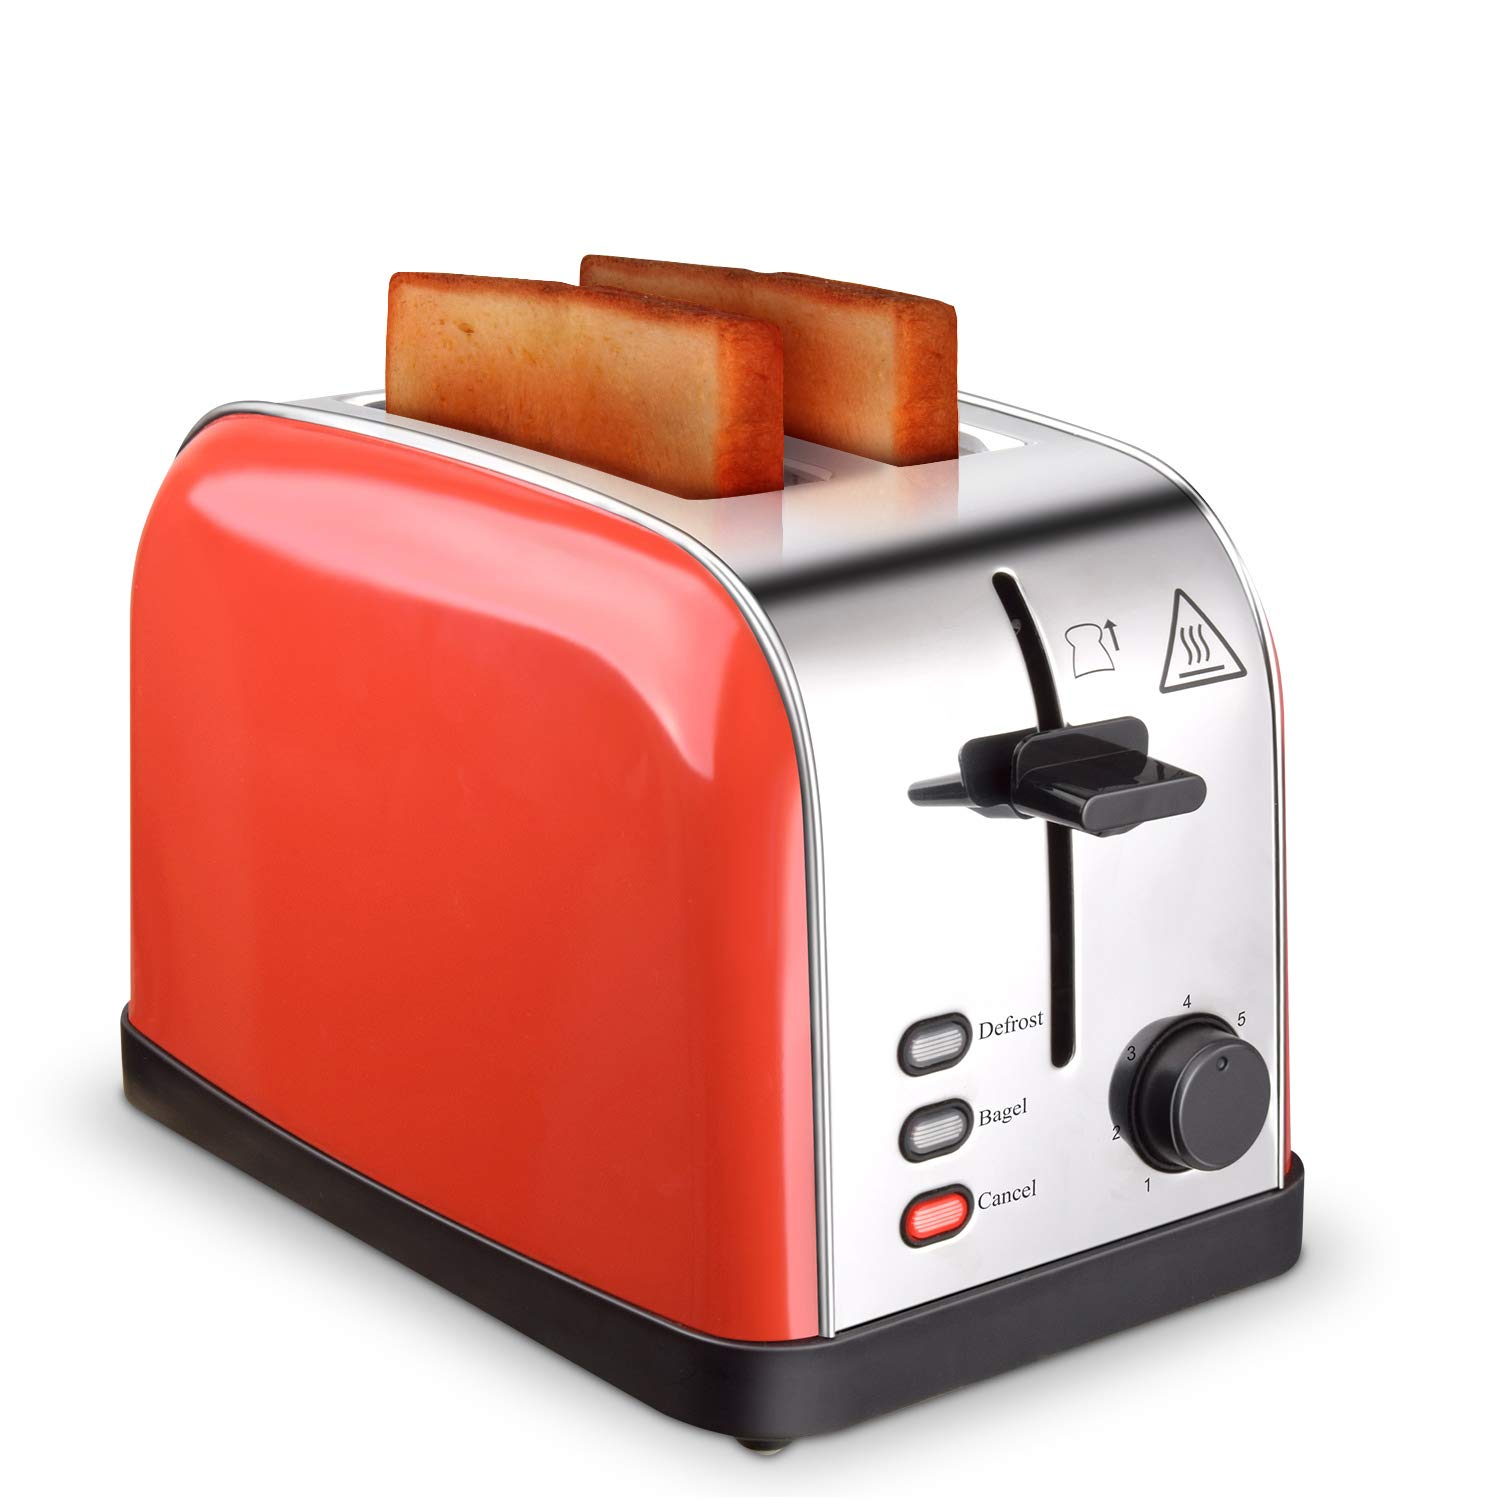 Toaster 2 Slice Toasters Best Rated Prime Extra Wide Slots Compact Stainless Steel with Defrost Reheat Cancel Button High Lift Lever Toaster's Removable Crumb Tray Quickly Toast for Bread&Bagel by Evening (Image #1)